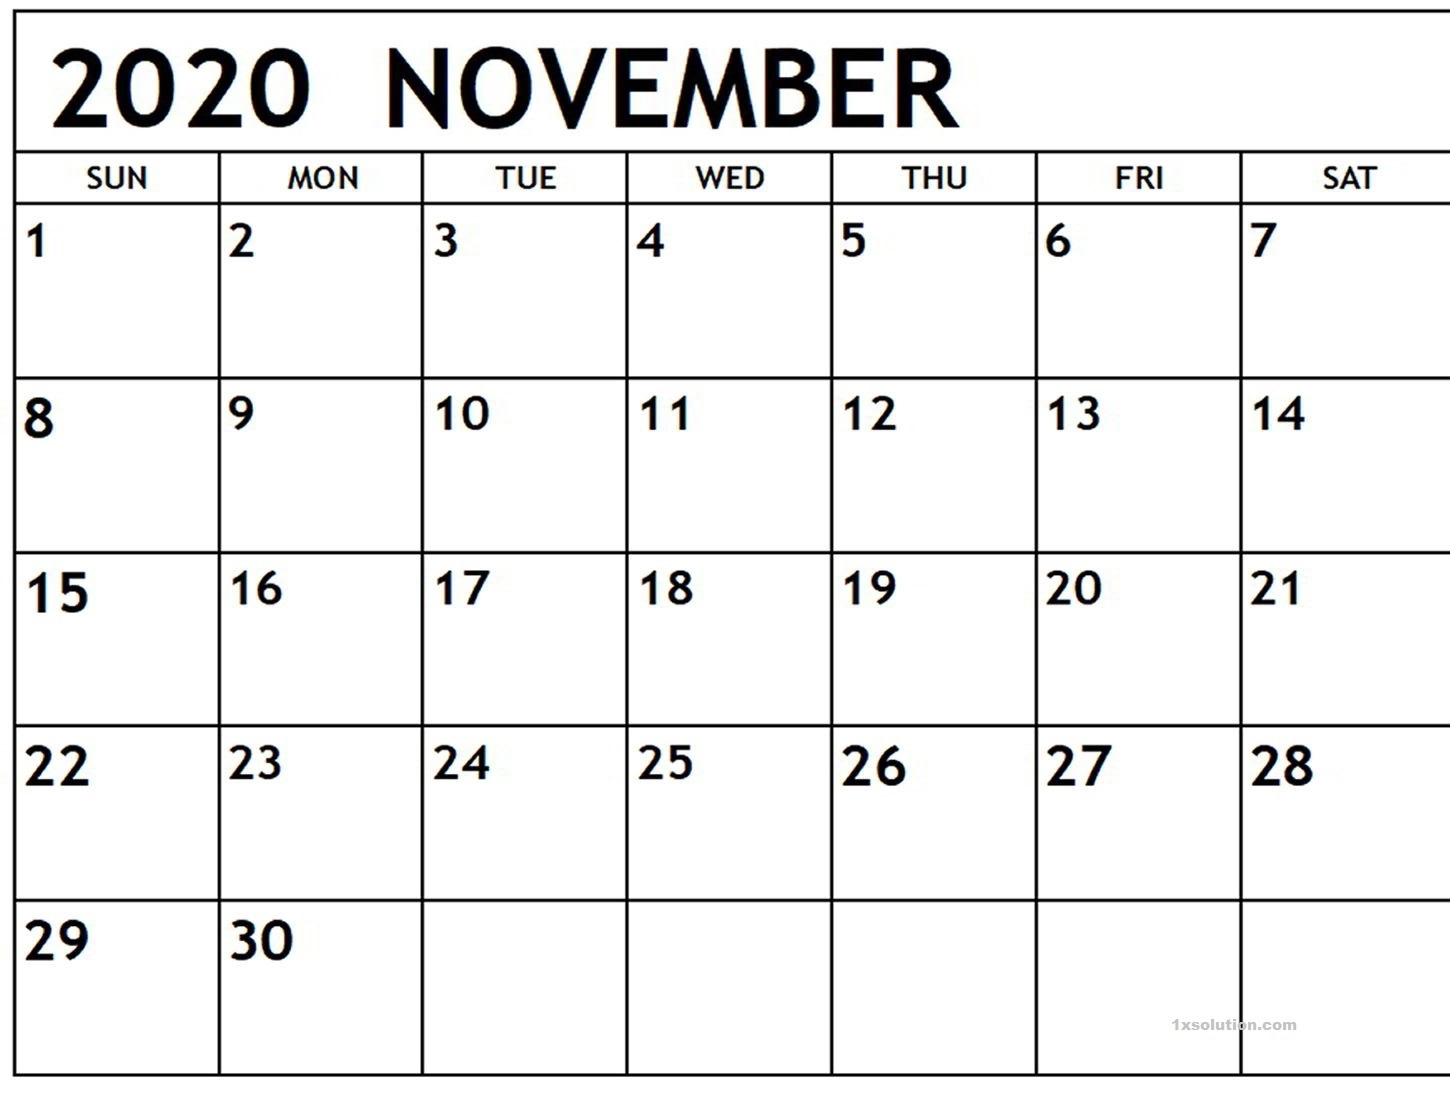 November 2020 Appointment Calendar Printable